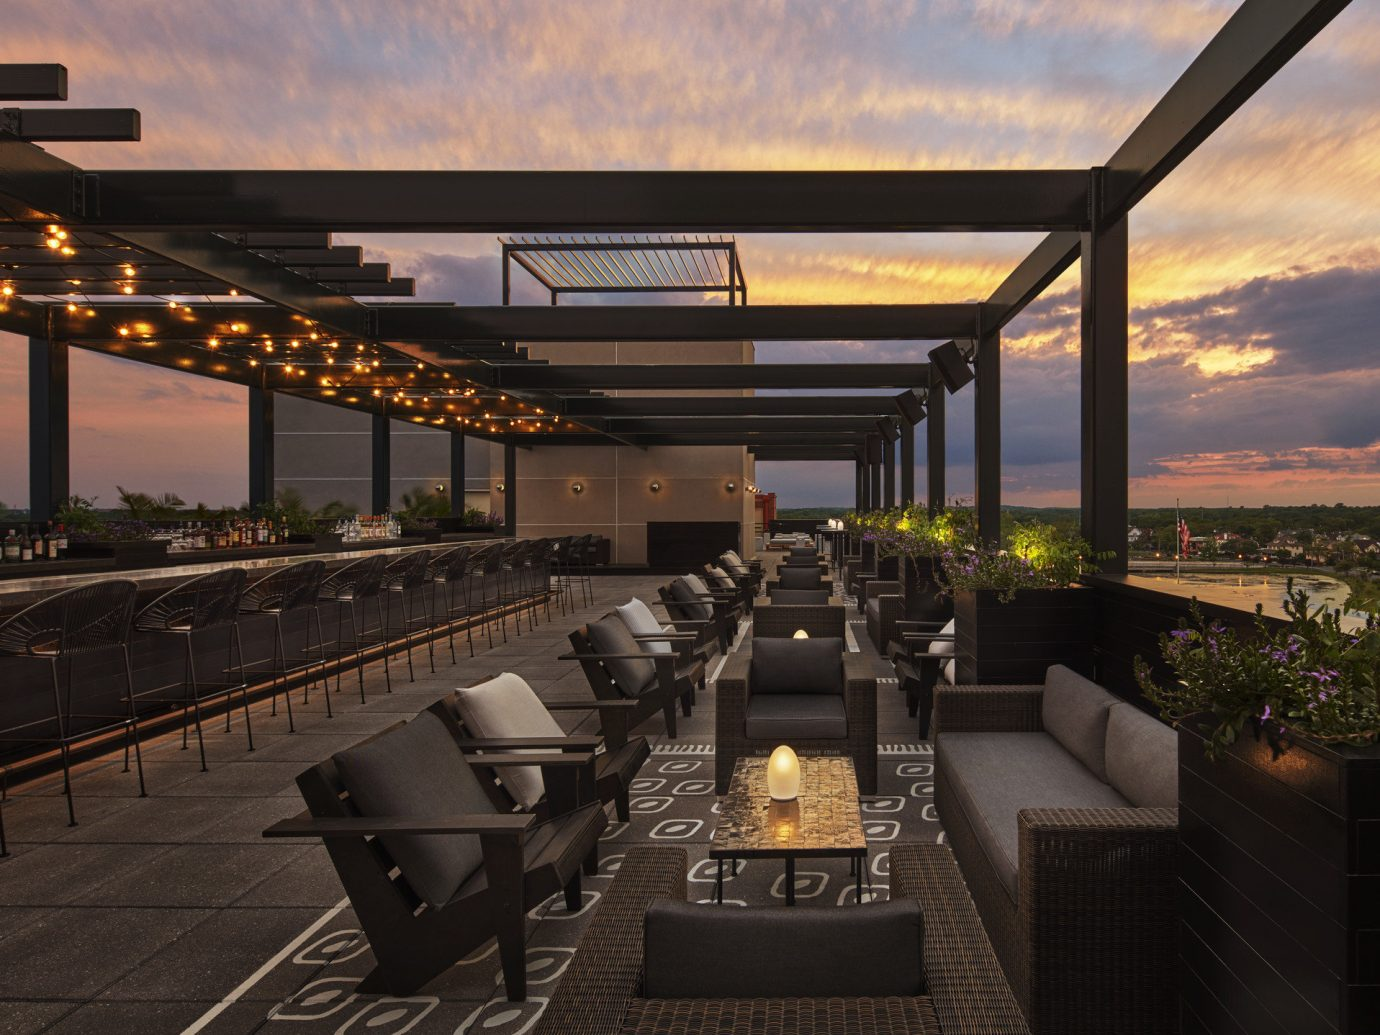 ambient lighting bar seating calm dawn dusk Elegant golden hour Hotels lights lounge chairs Luxury majestic night lights orange sky outdoor lounge regal remote Rooftop serene Solo Travel sophisticated Sunset view sky outdoor bridge lighting evening estate interior design